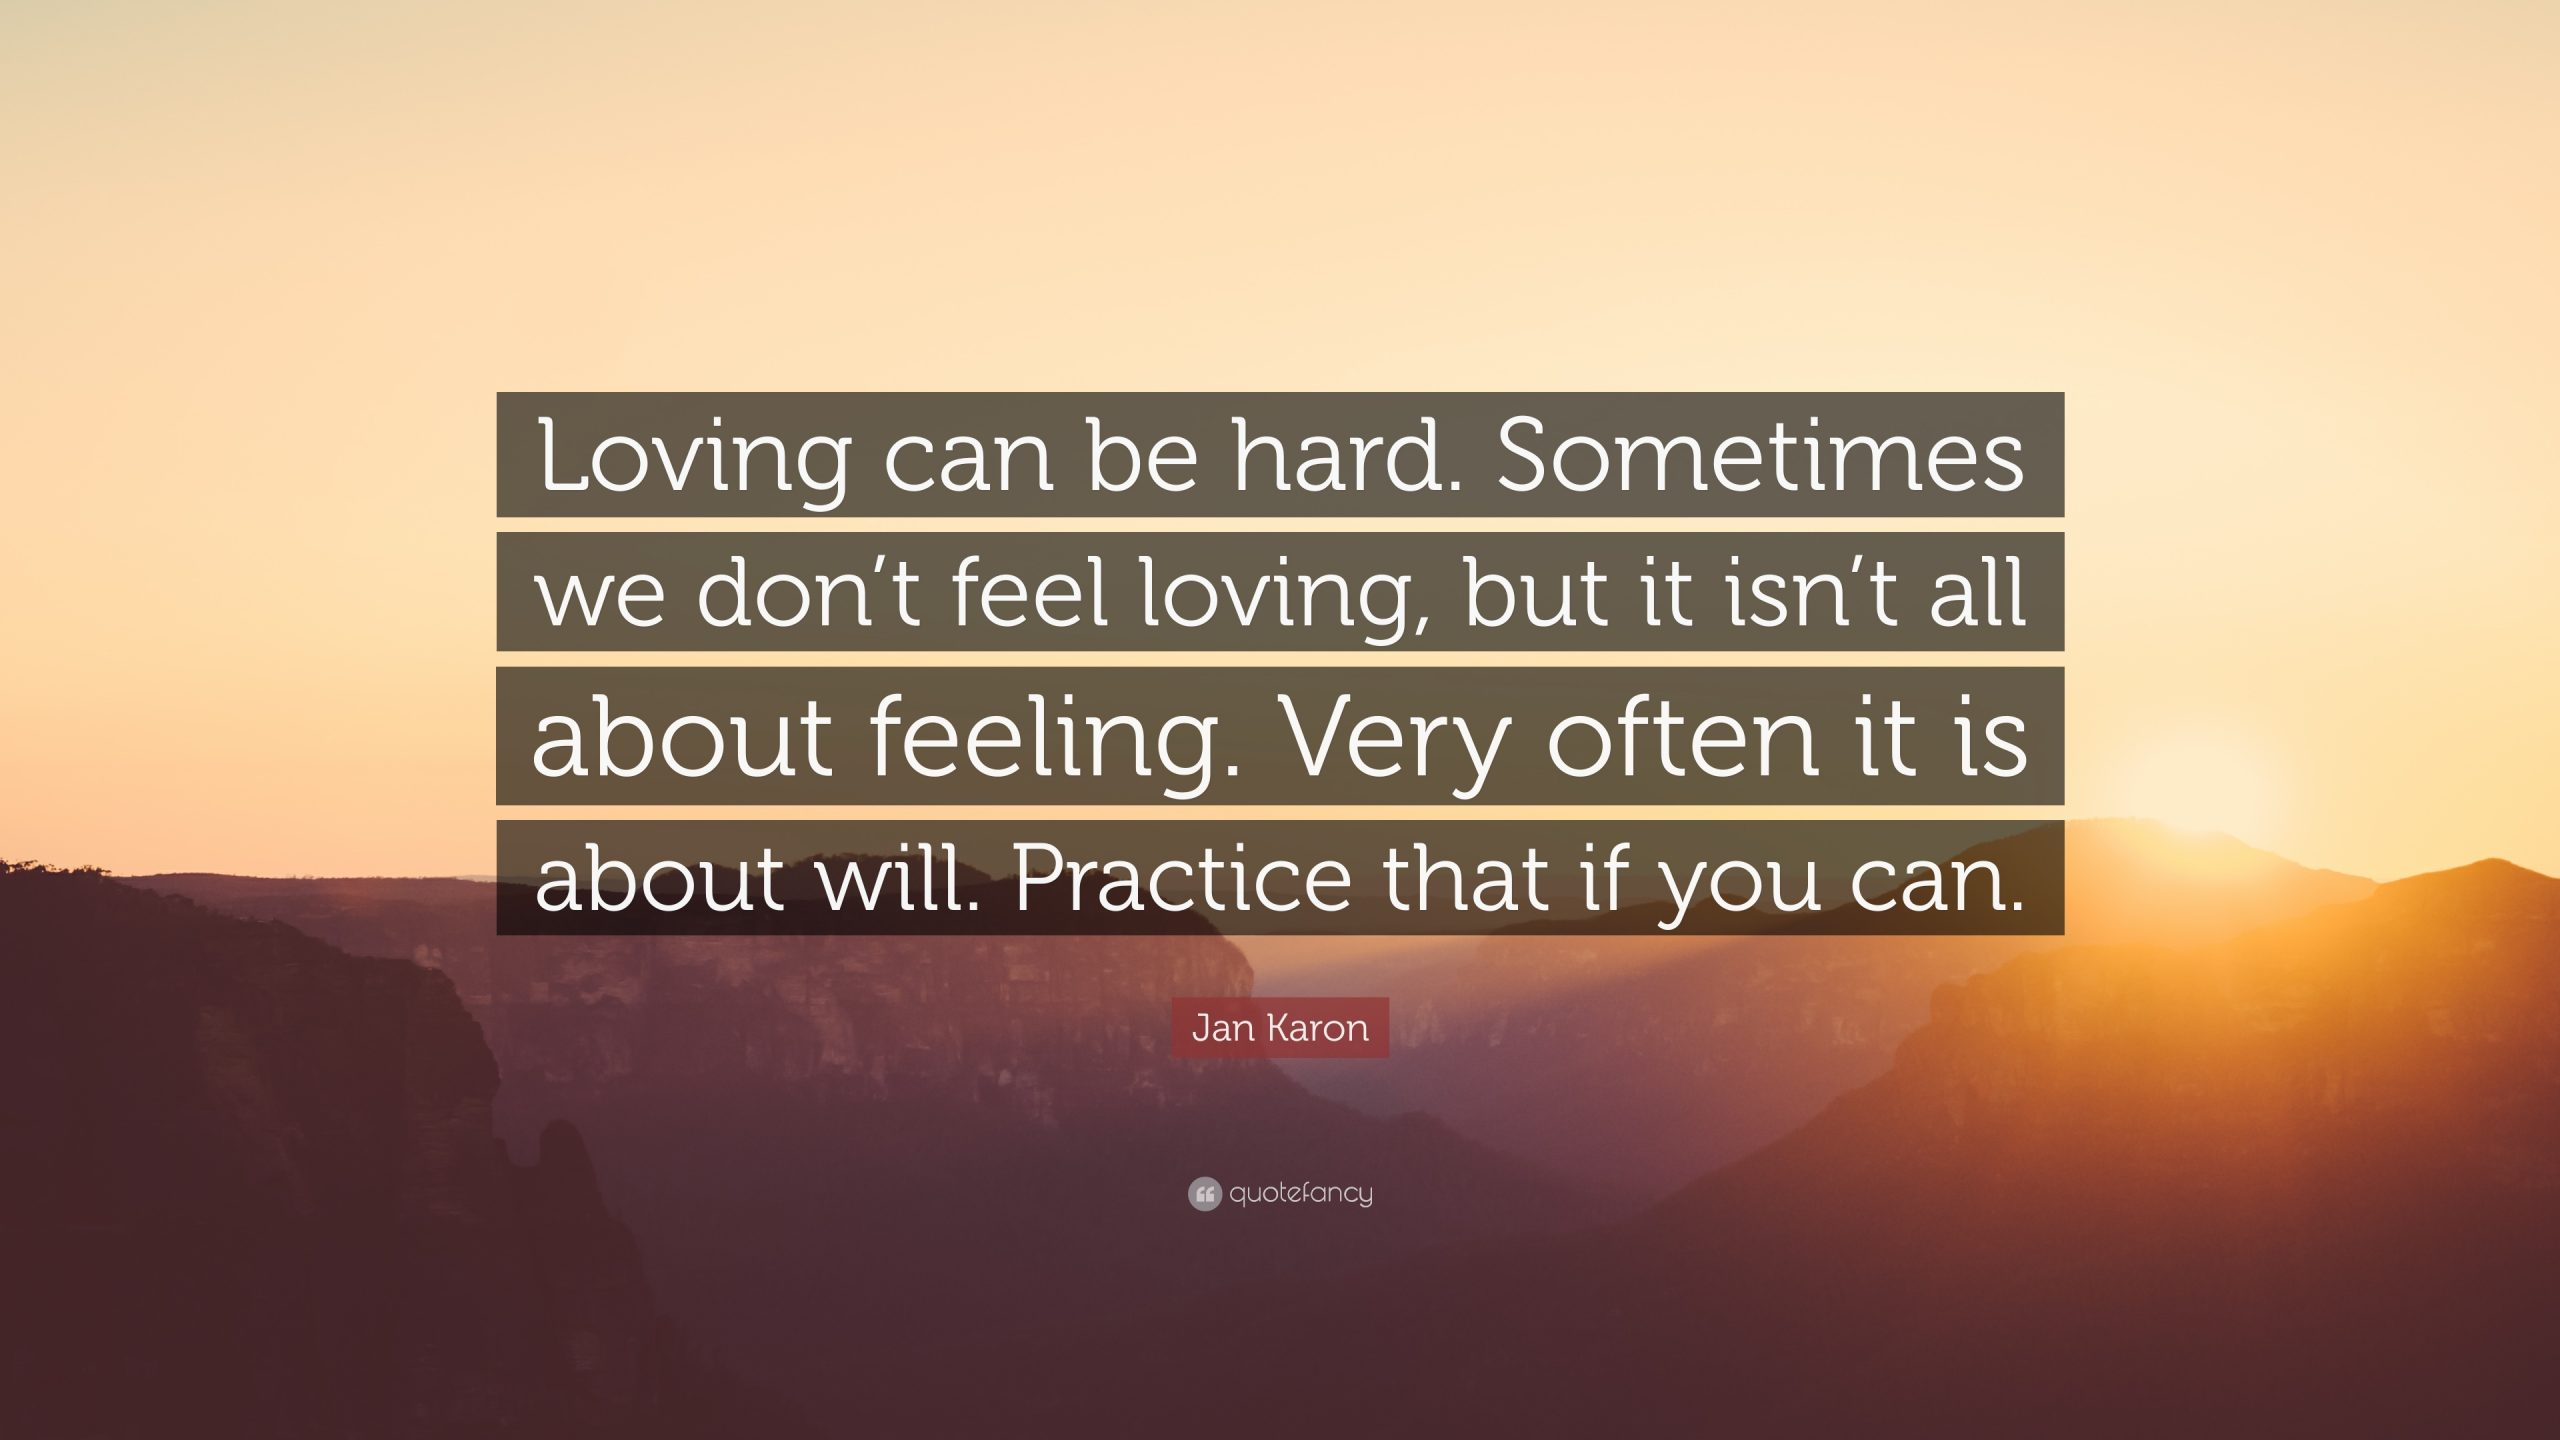 975915 Jan Karon Quote Loving can be hard Sometimes we don t feel loving scaled - How to use English Modal Verbs   Possibility & Probability